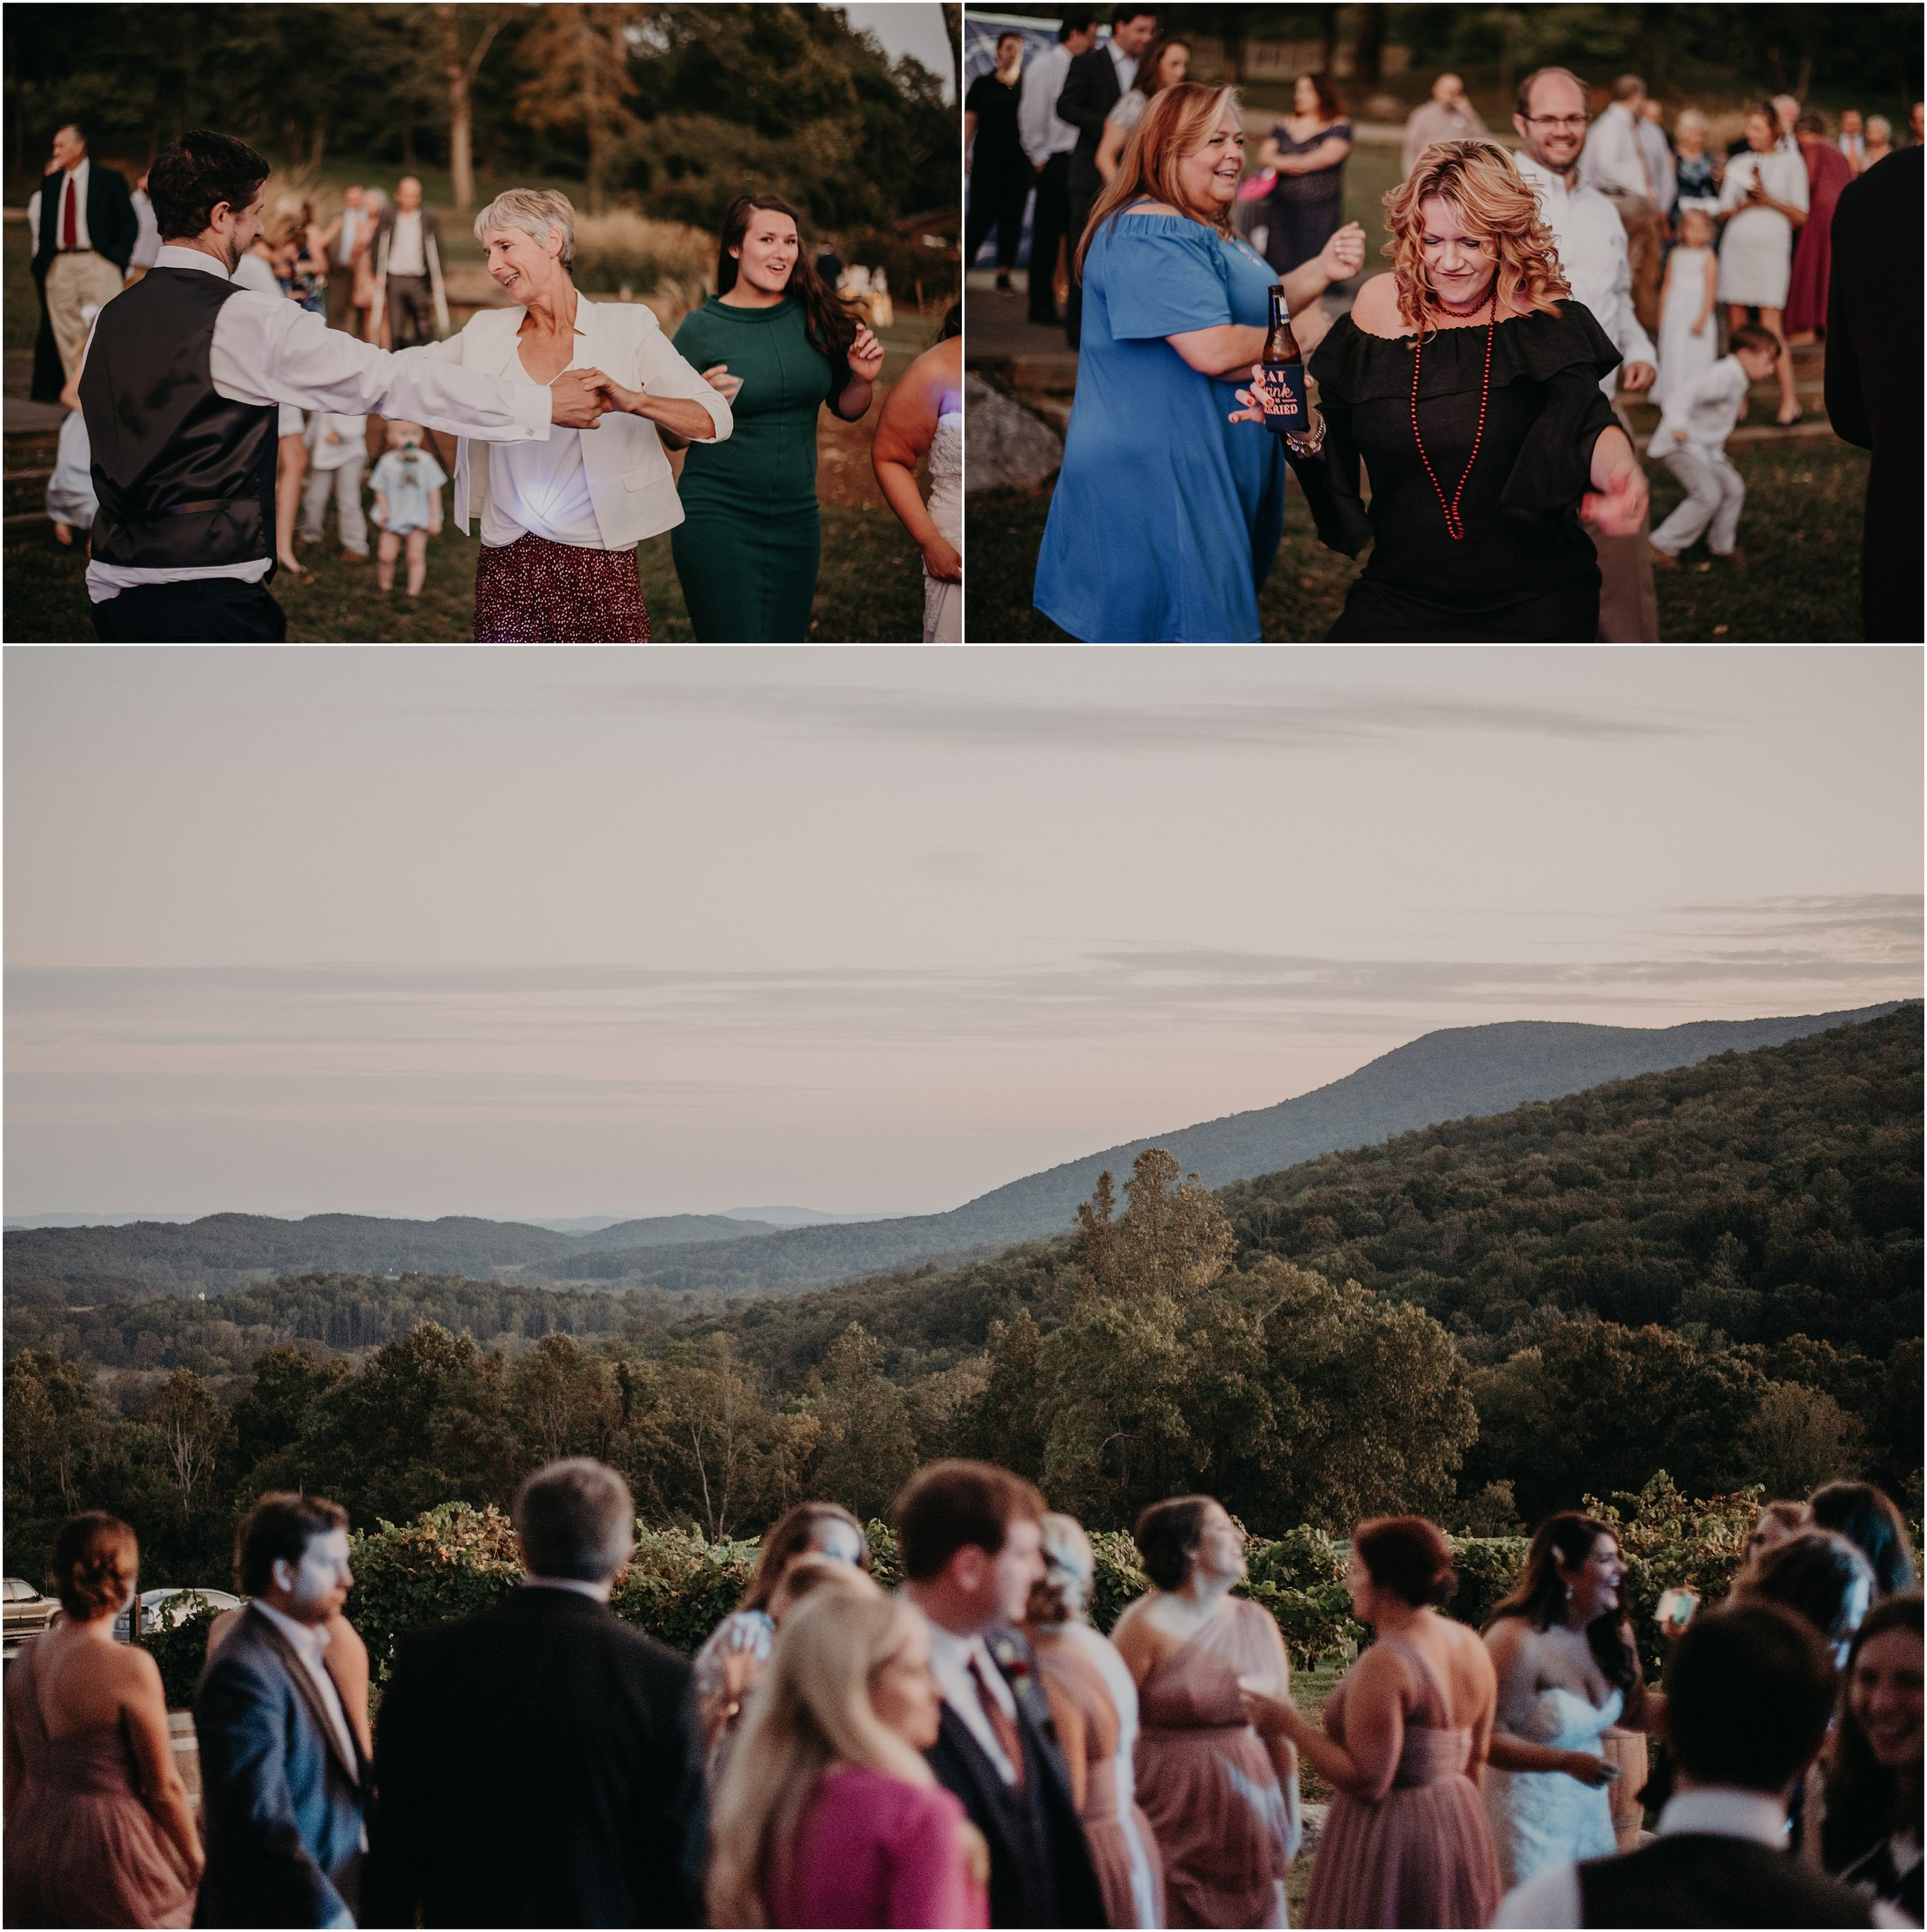 Guests enjoy the outdoor reception with views of the Blue Ridge Mountains